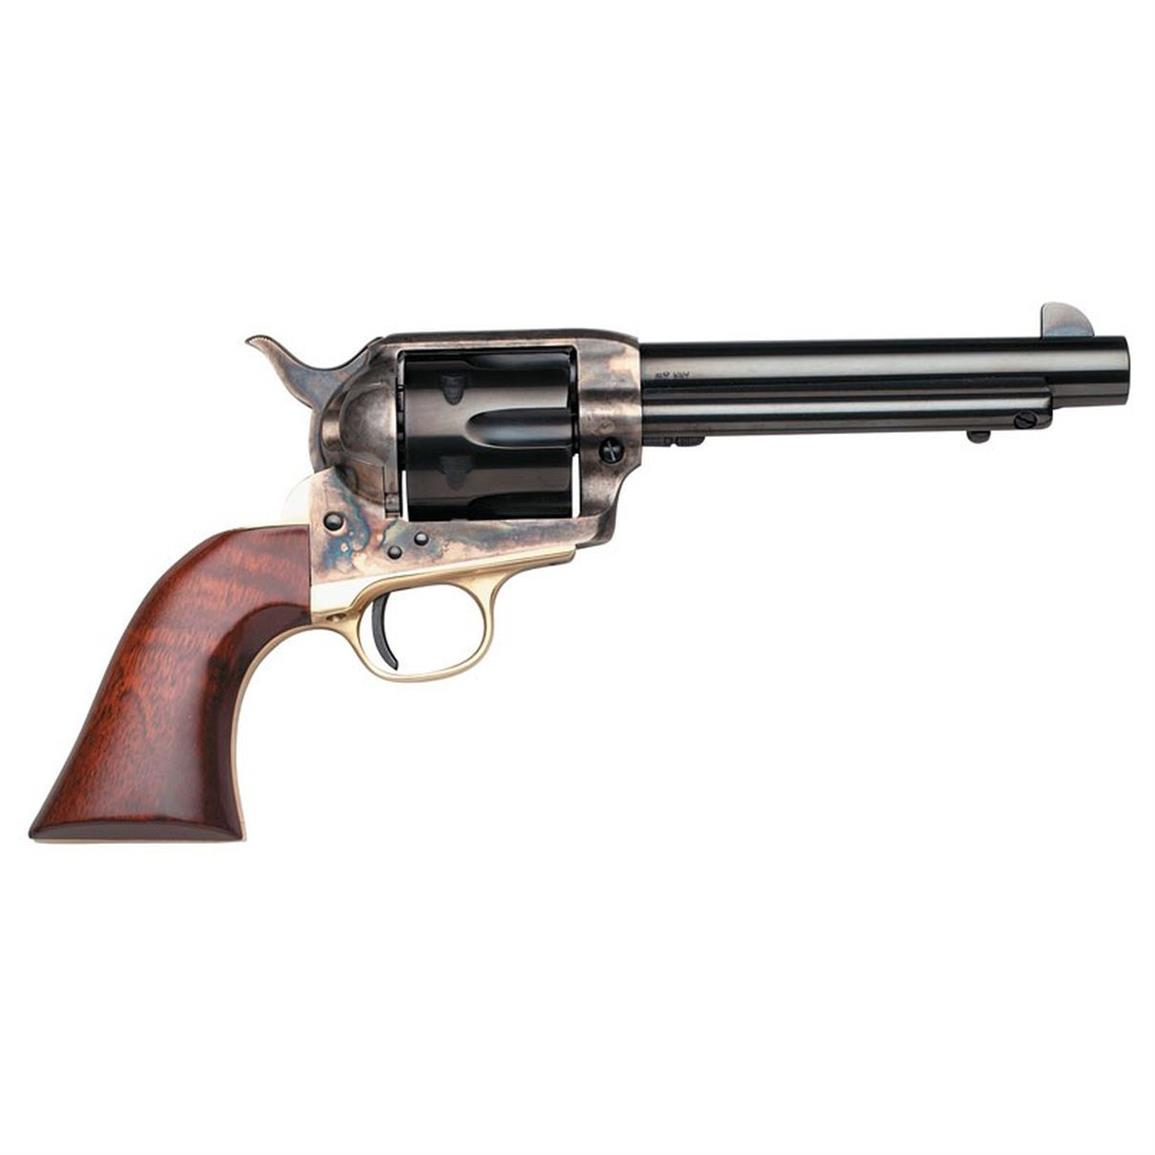 "Taylor's & Co. Uberti The Ranch Hand Standard, Revolver, .45 Colt, 5.5"" Barrel, 6 Rounds"